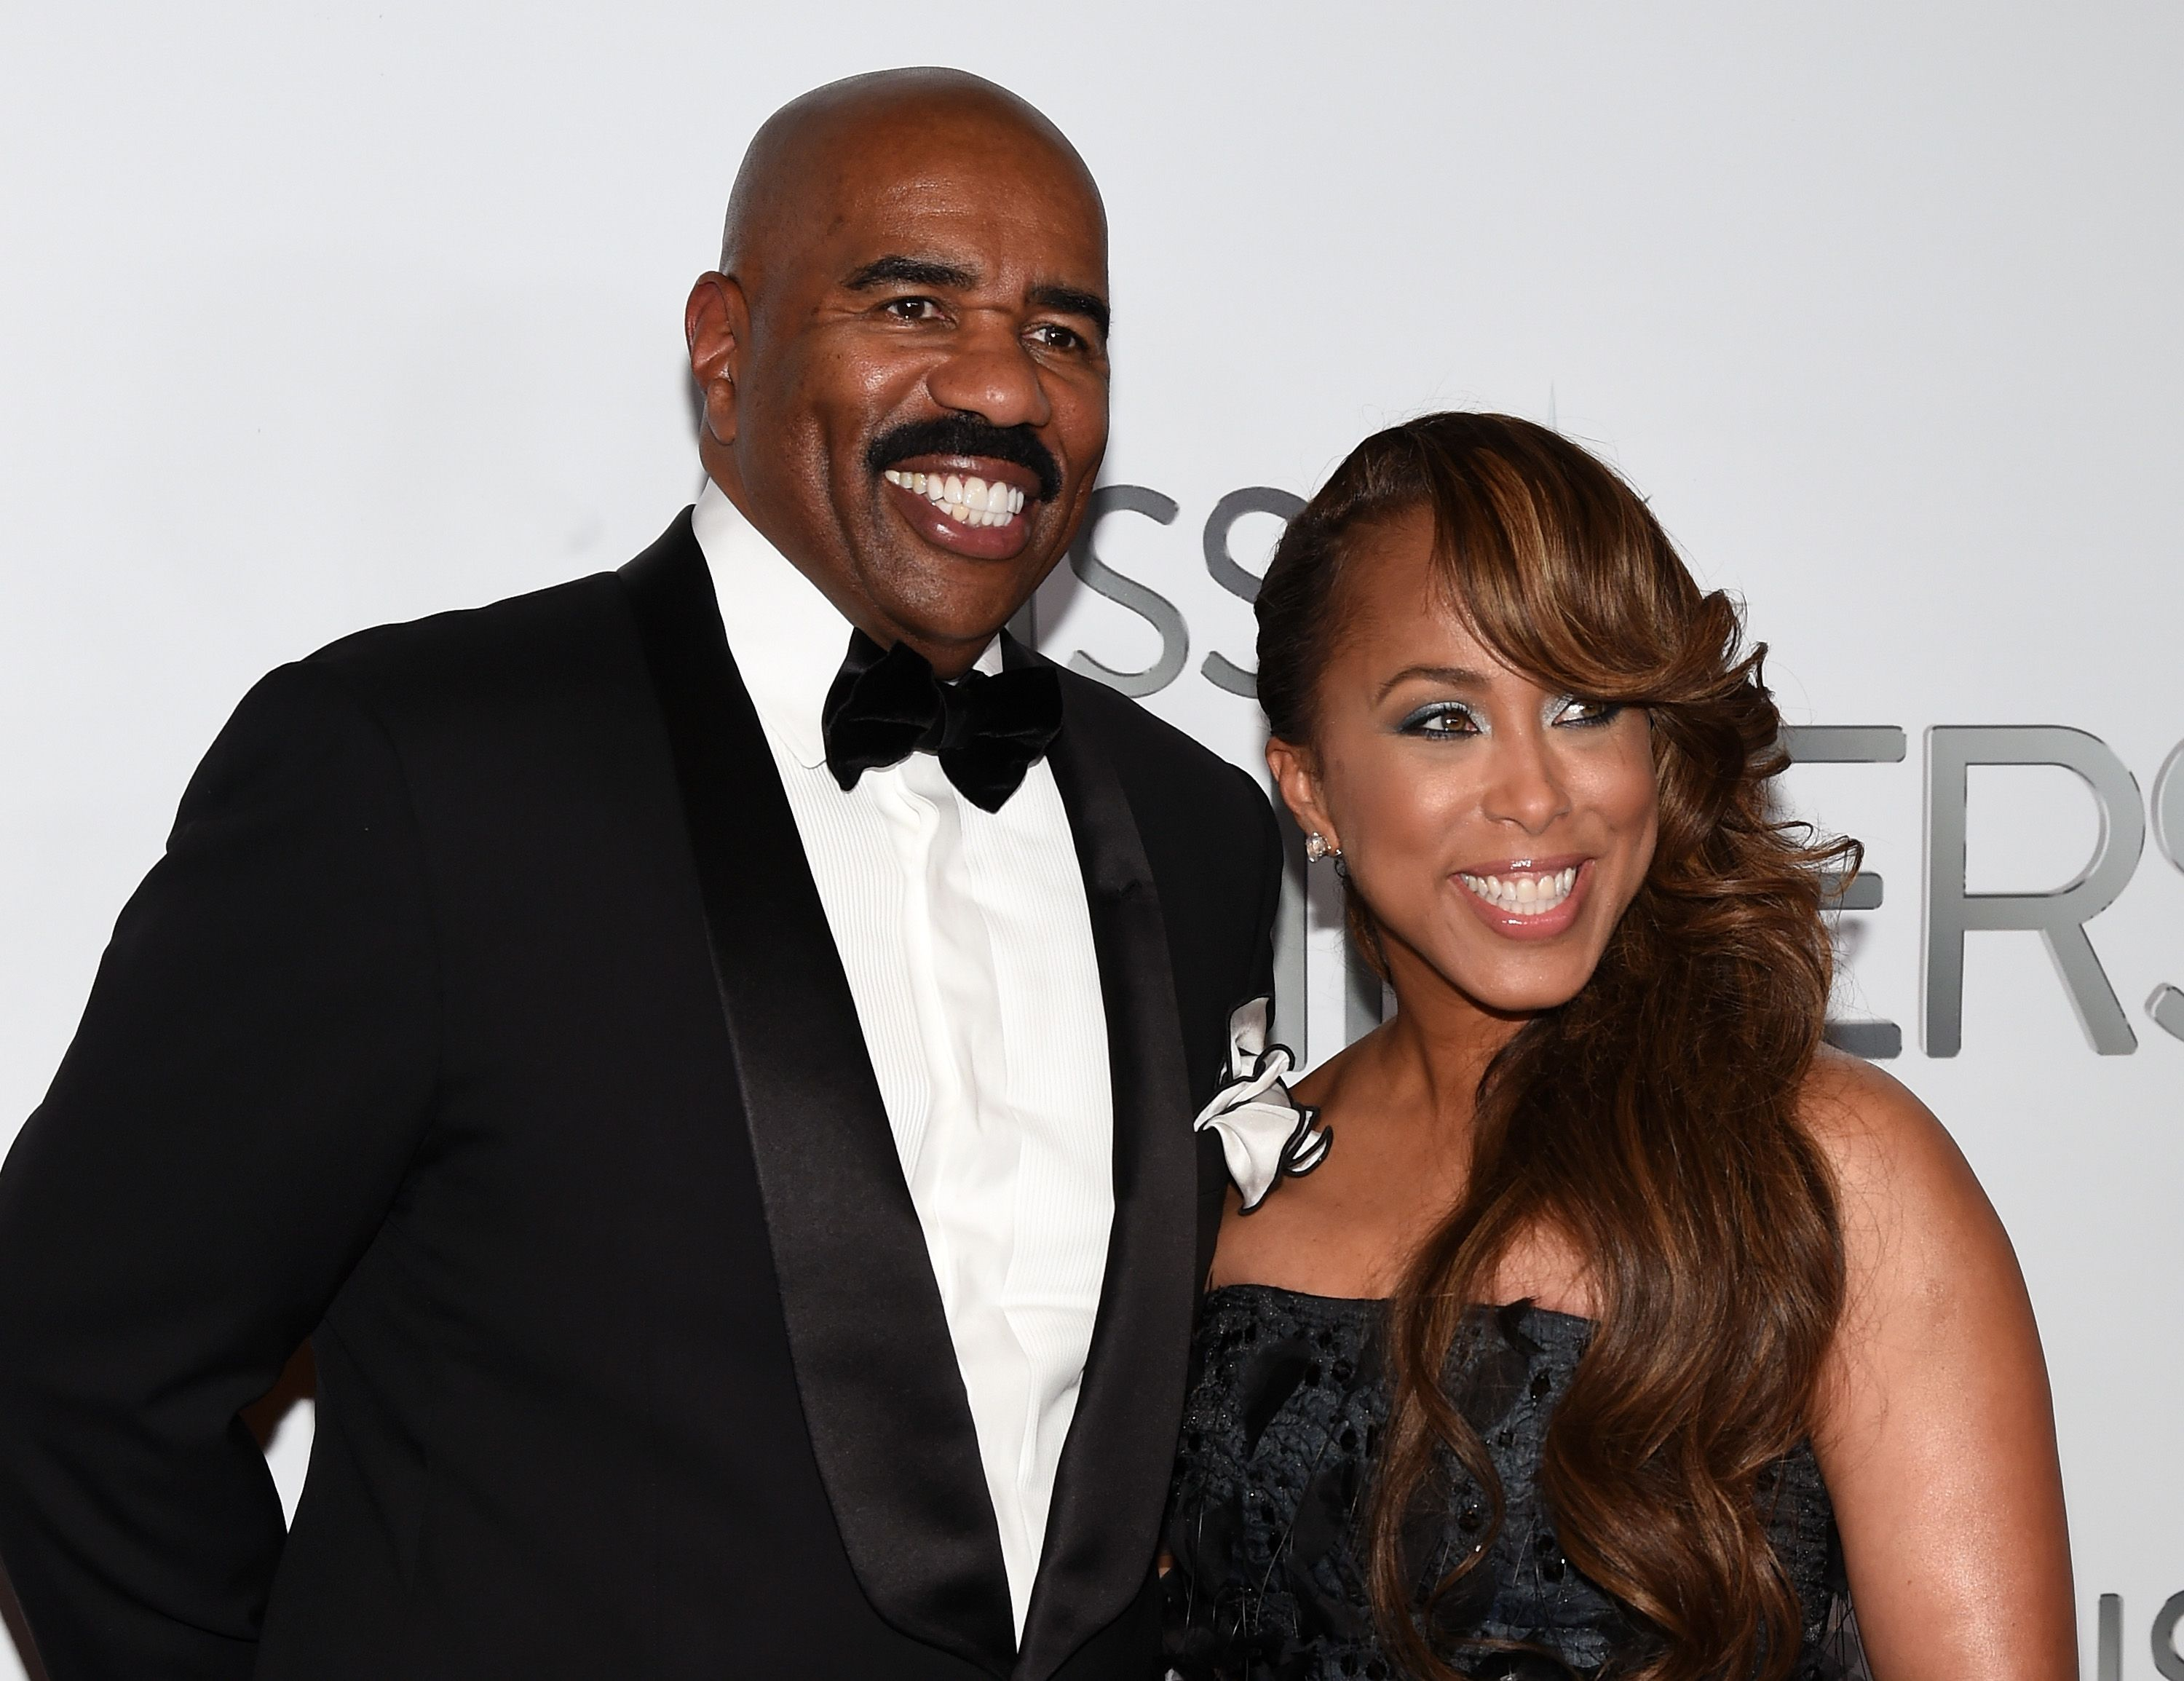 Steve Harvey and his wife Marjorie Harvey at the 2015 Miss Universe Pageant at Planet Hollywood Resort & Casino on December 20, 2015  | Photo: Getty Images